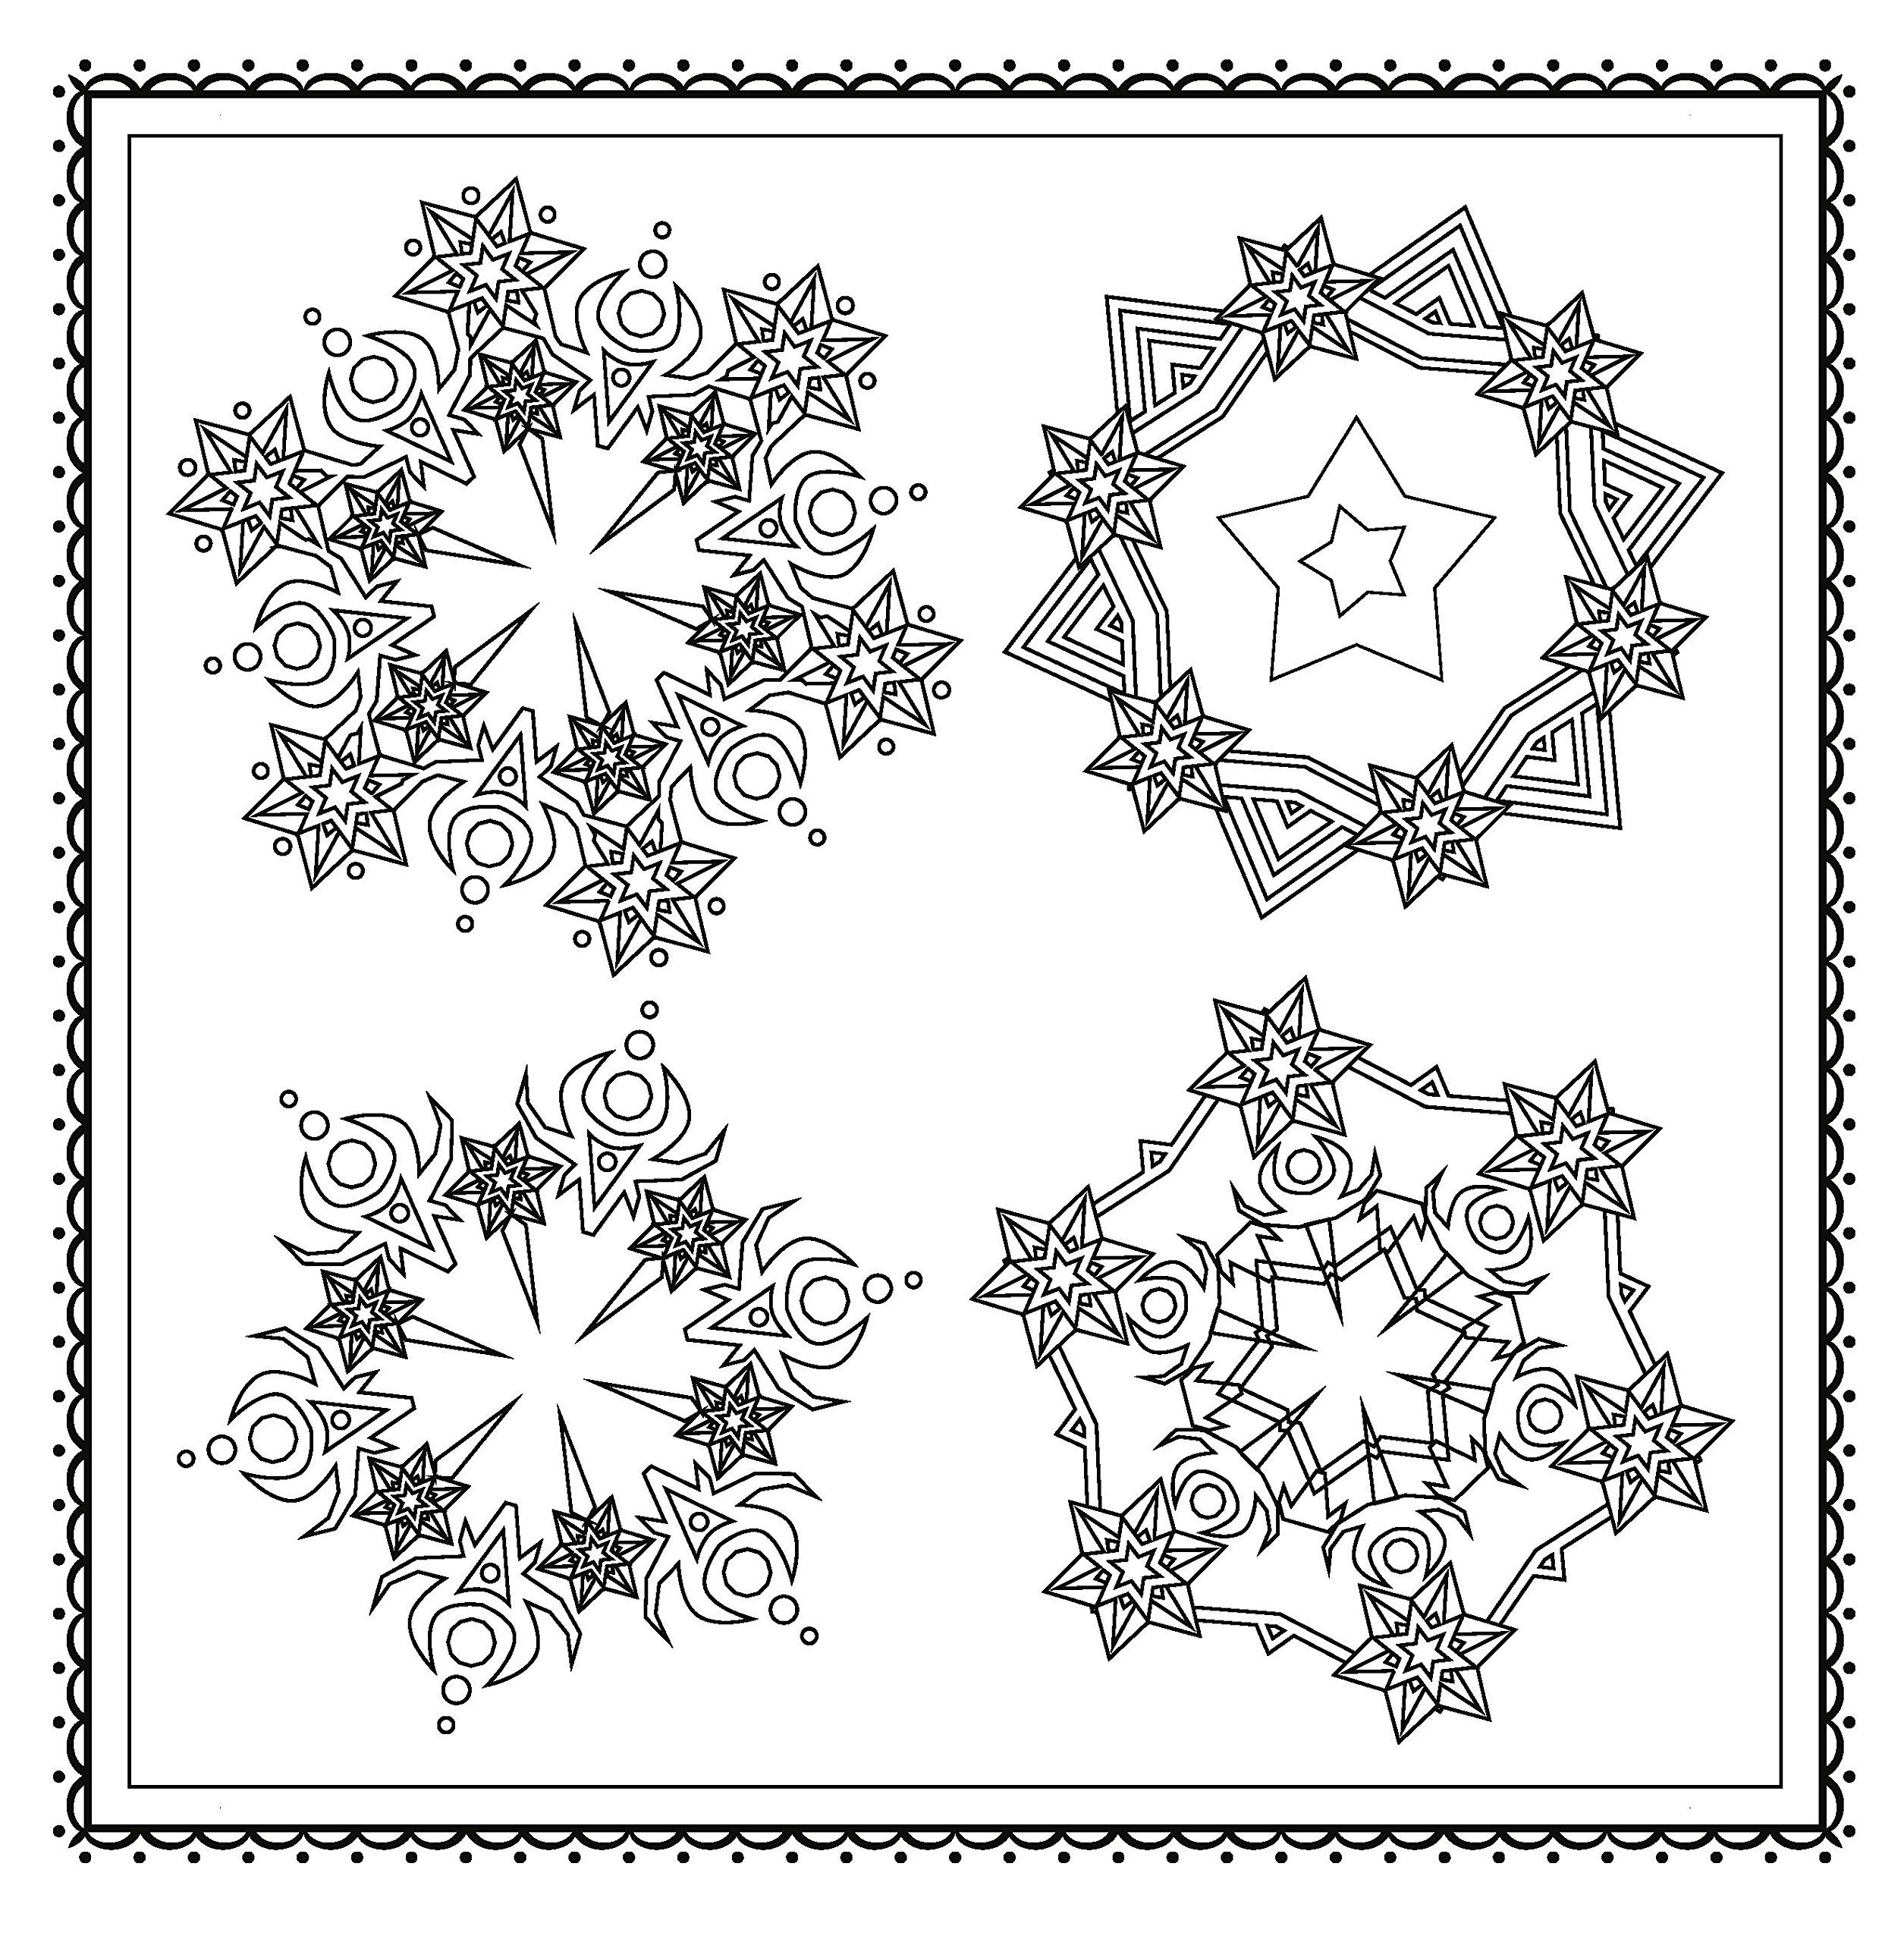 Other Recommended Winter Magic Beautiful Holiday Patterns Coloring Book For Adults Color Christmas Gifts Idea Stores